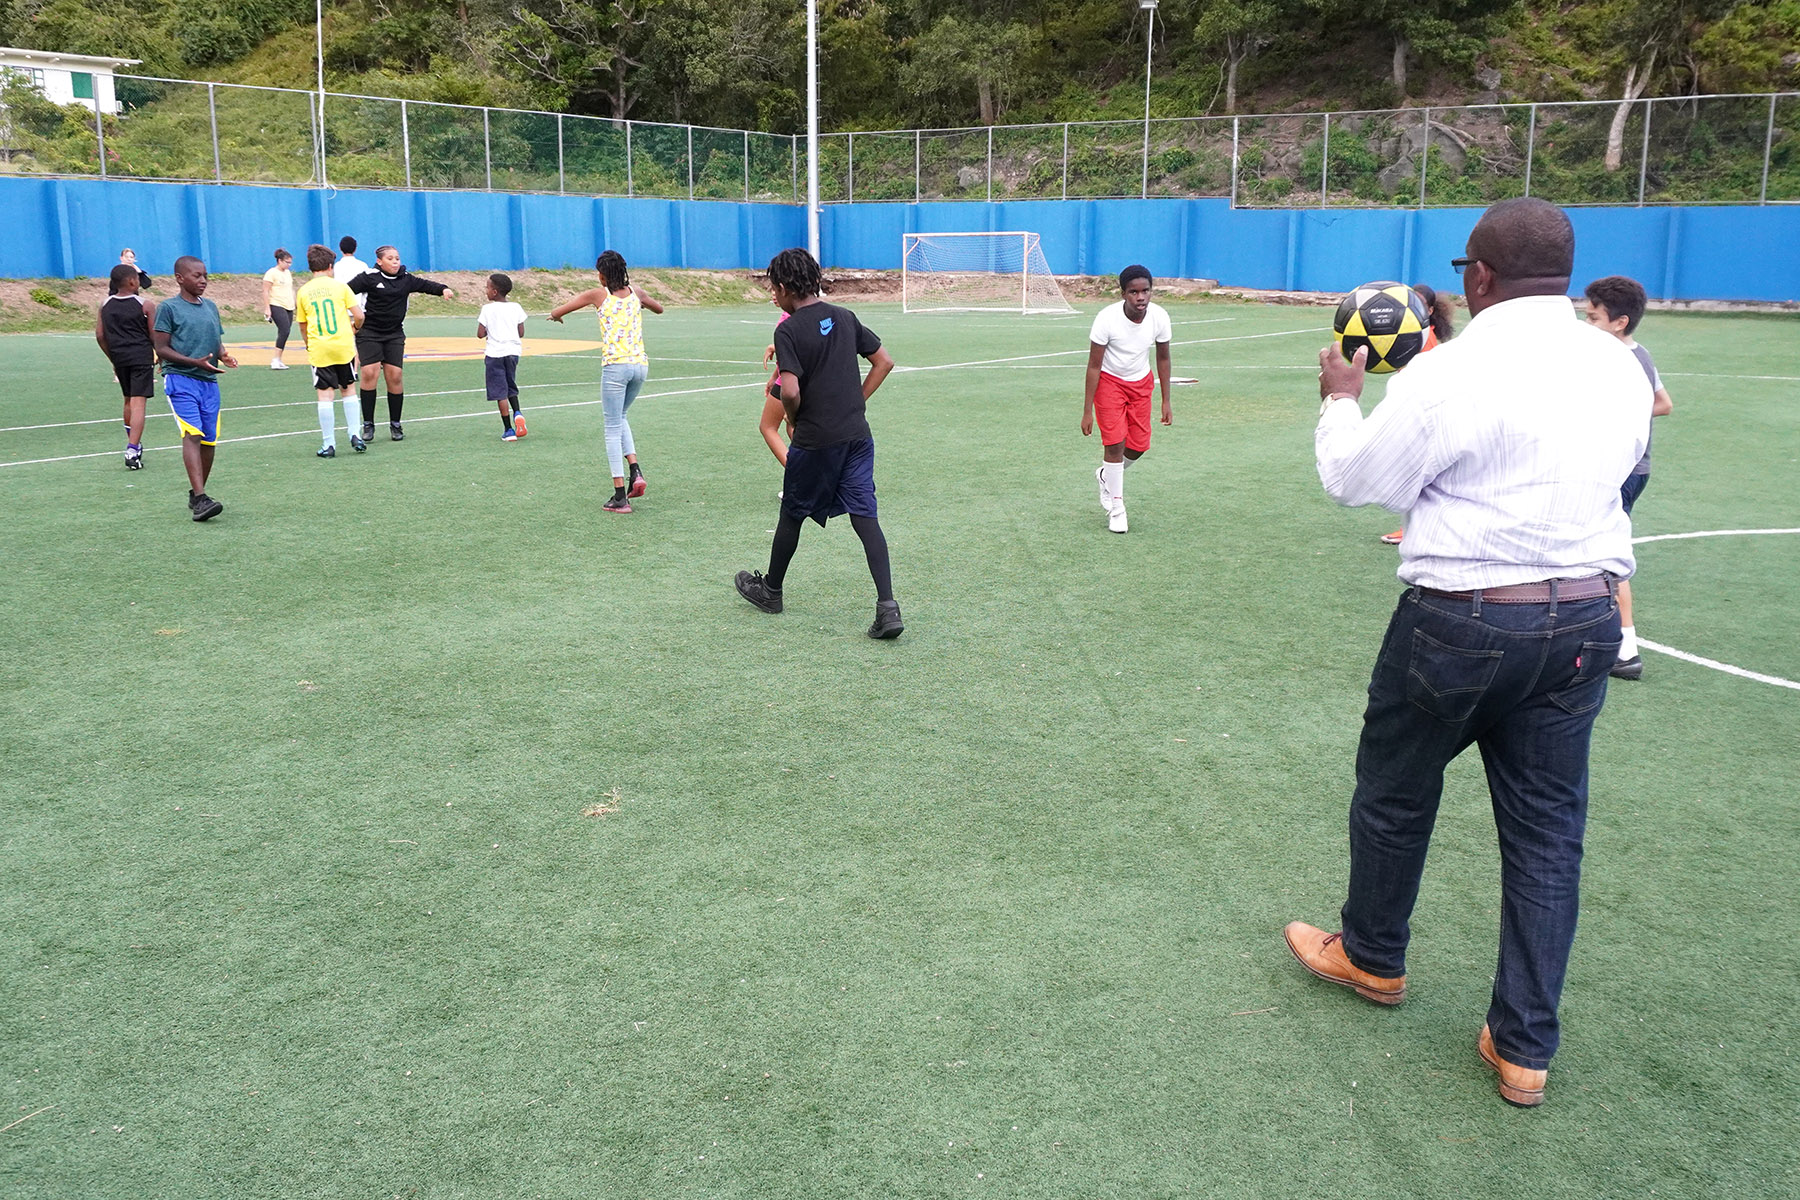 Wilson with young soccer players at Johan Cruyff Court 01